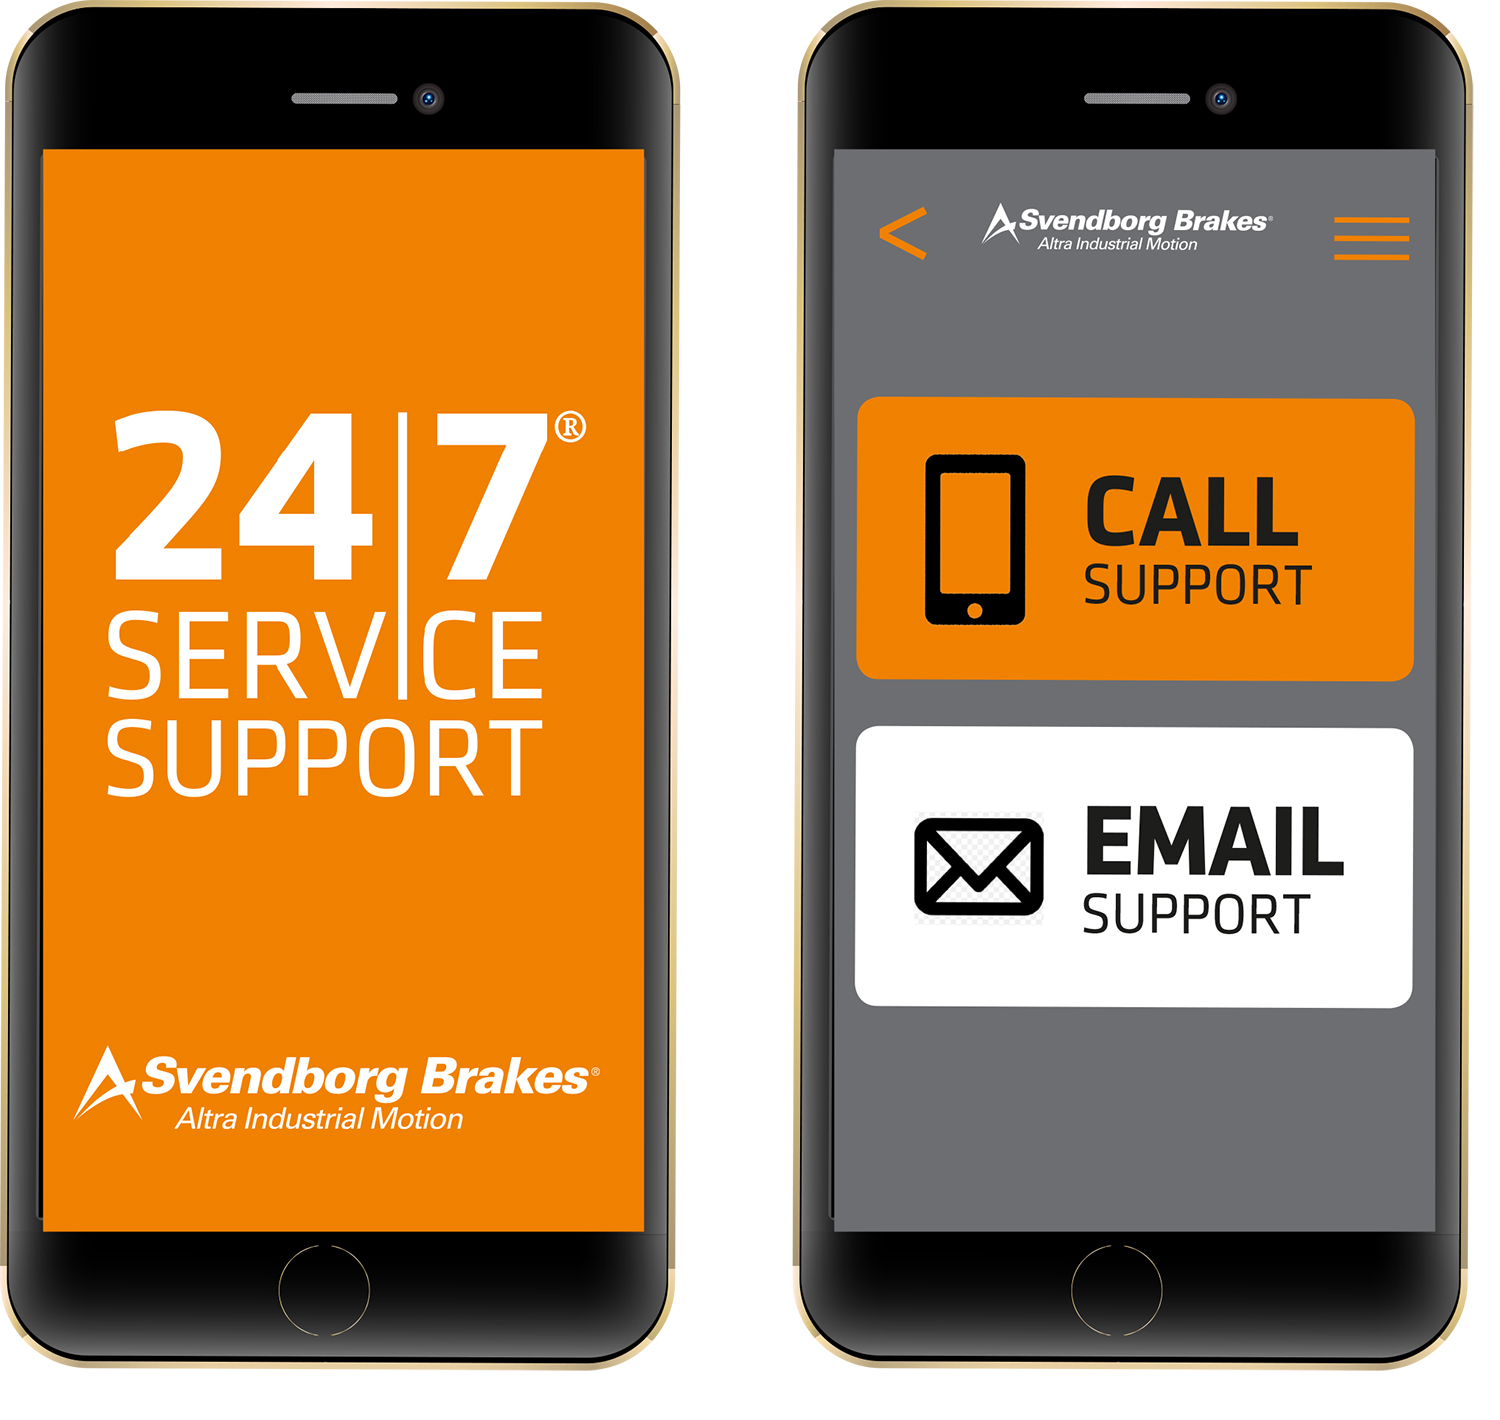 Free technical support with the Svendborg Brakes Service App anytime, anywhere